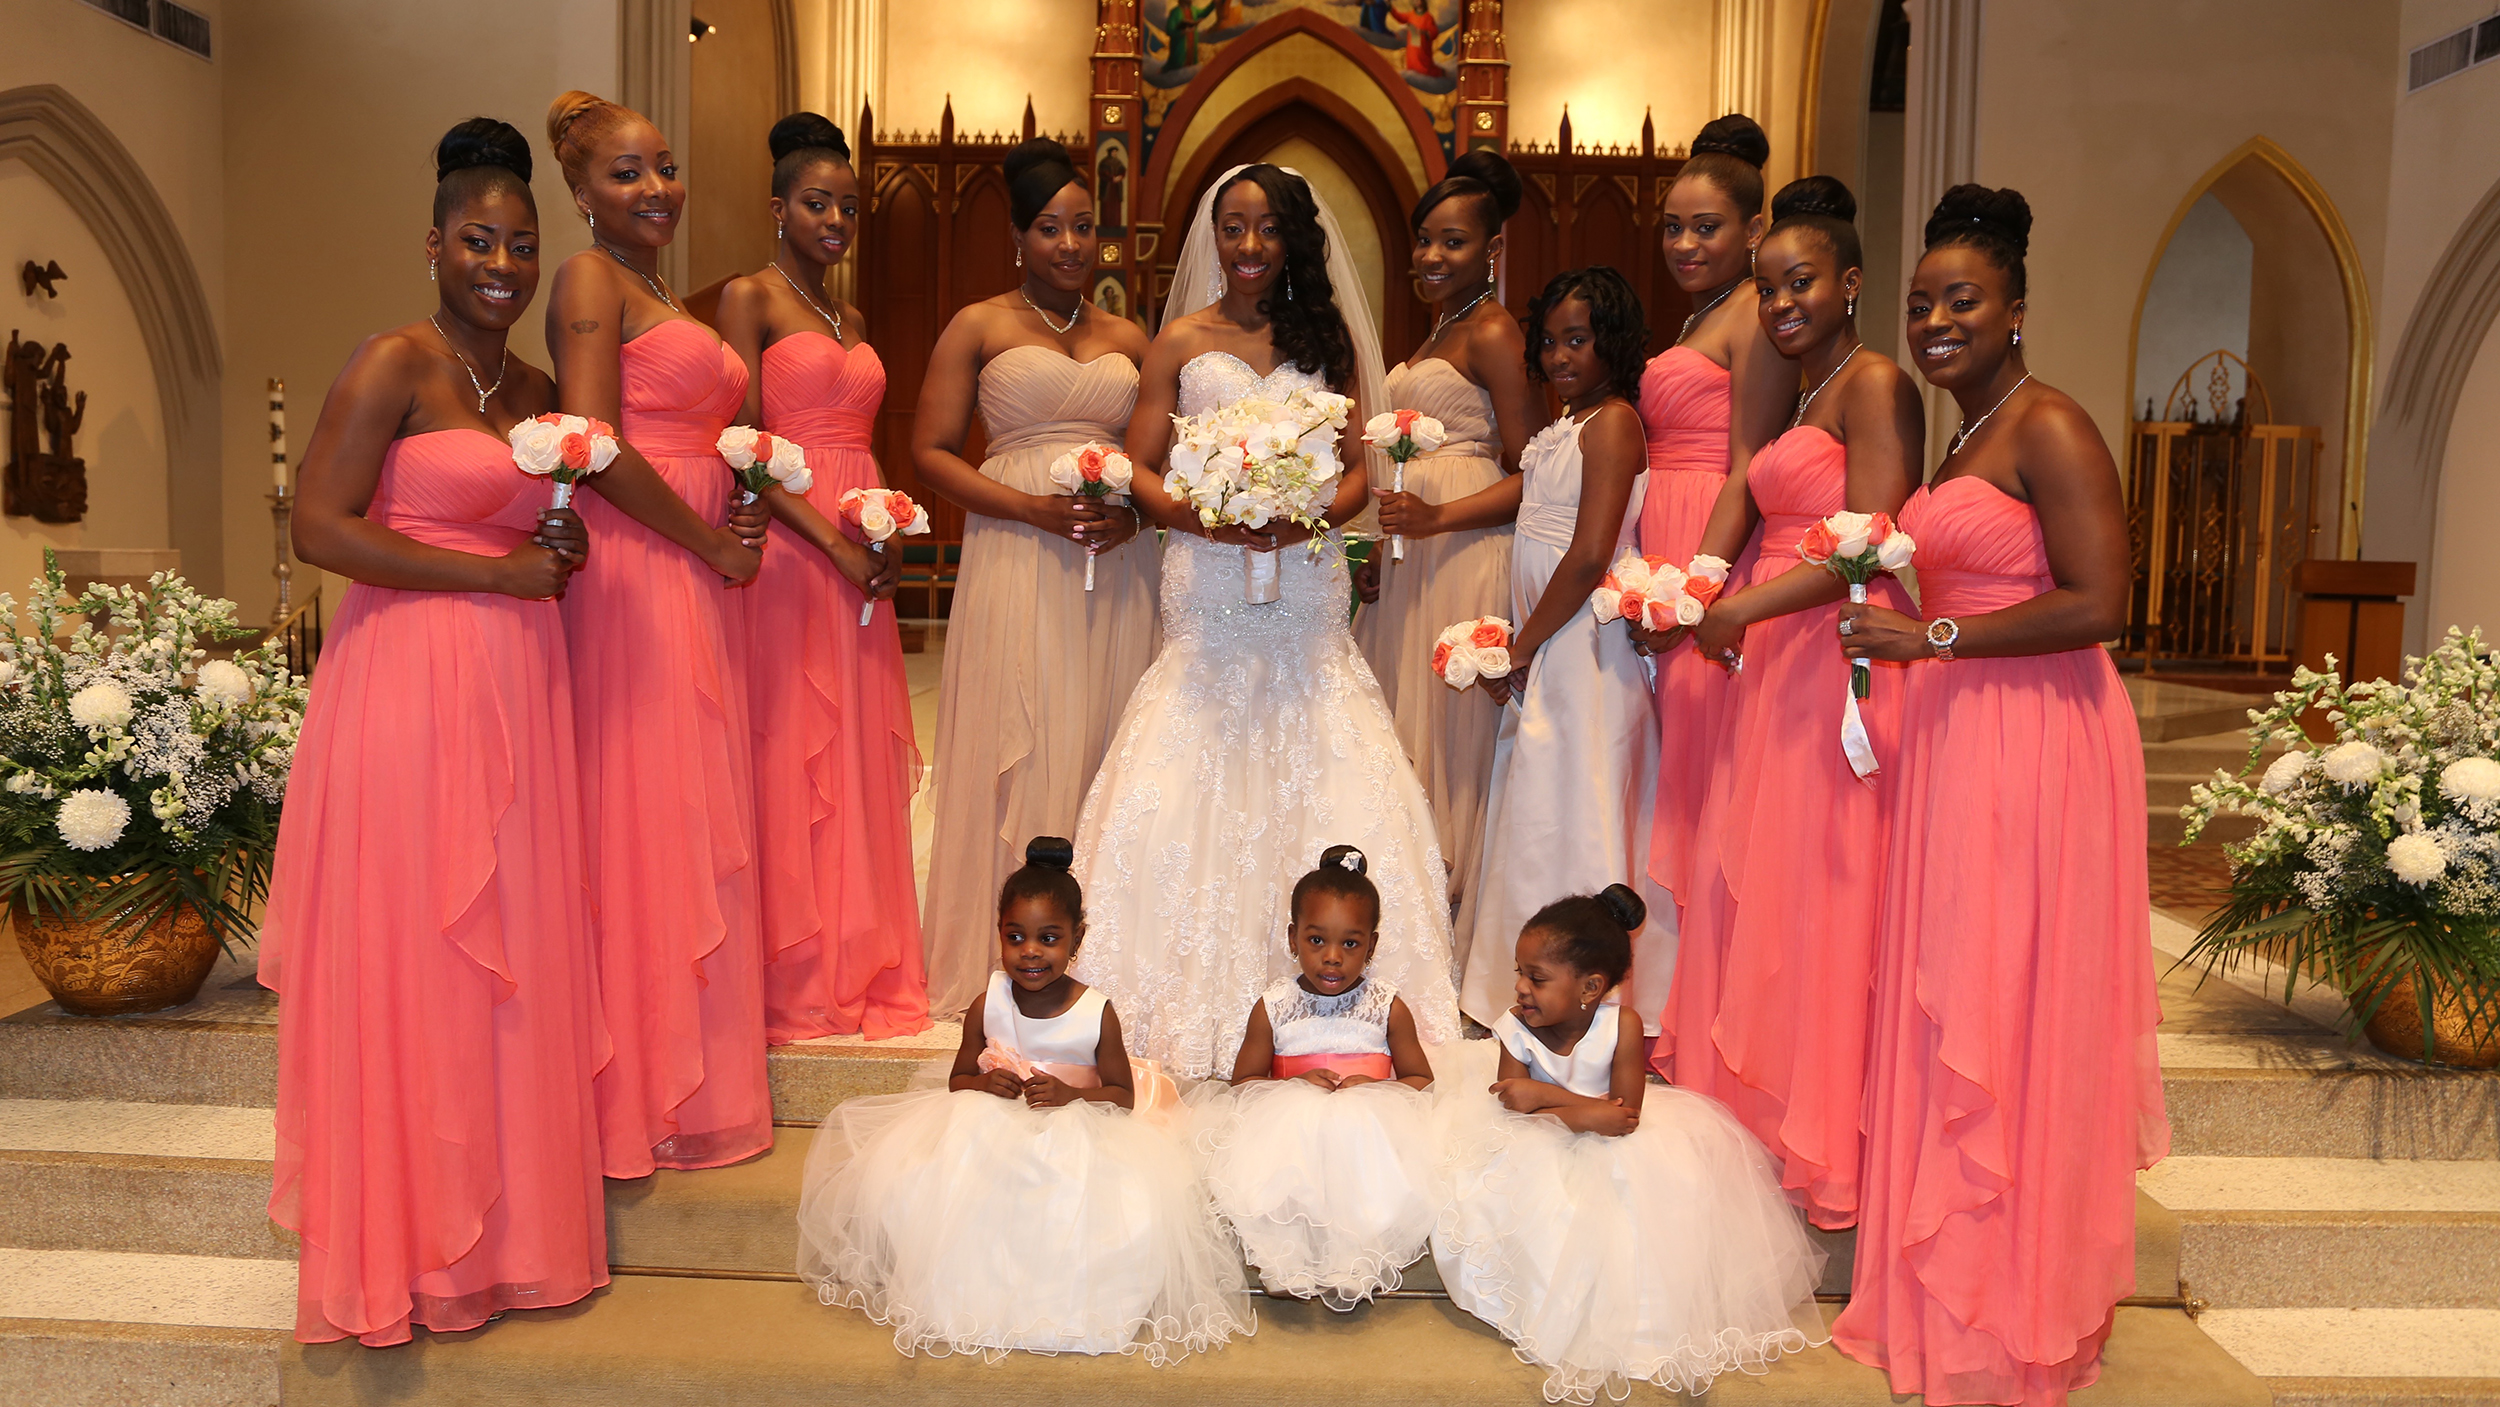 Bridesmaids and bridal party tips what i wish i knew for Wedding party ideas